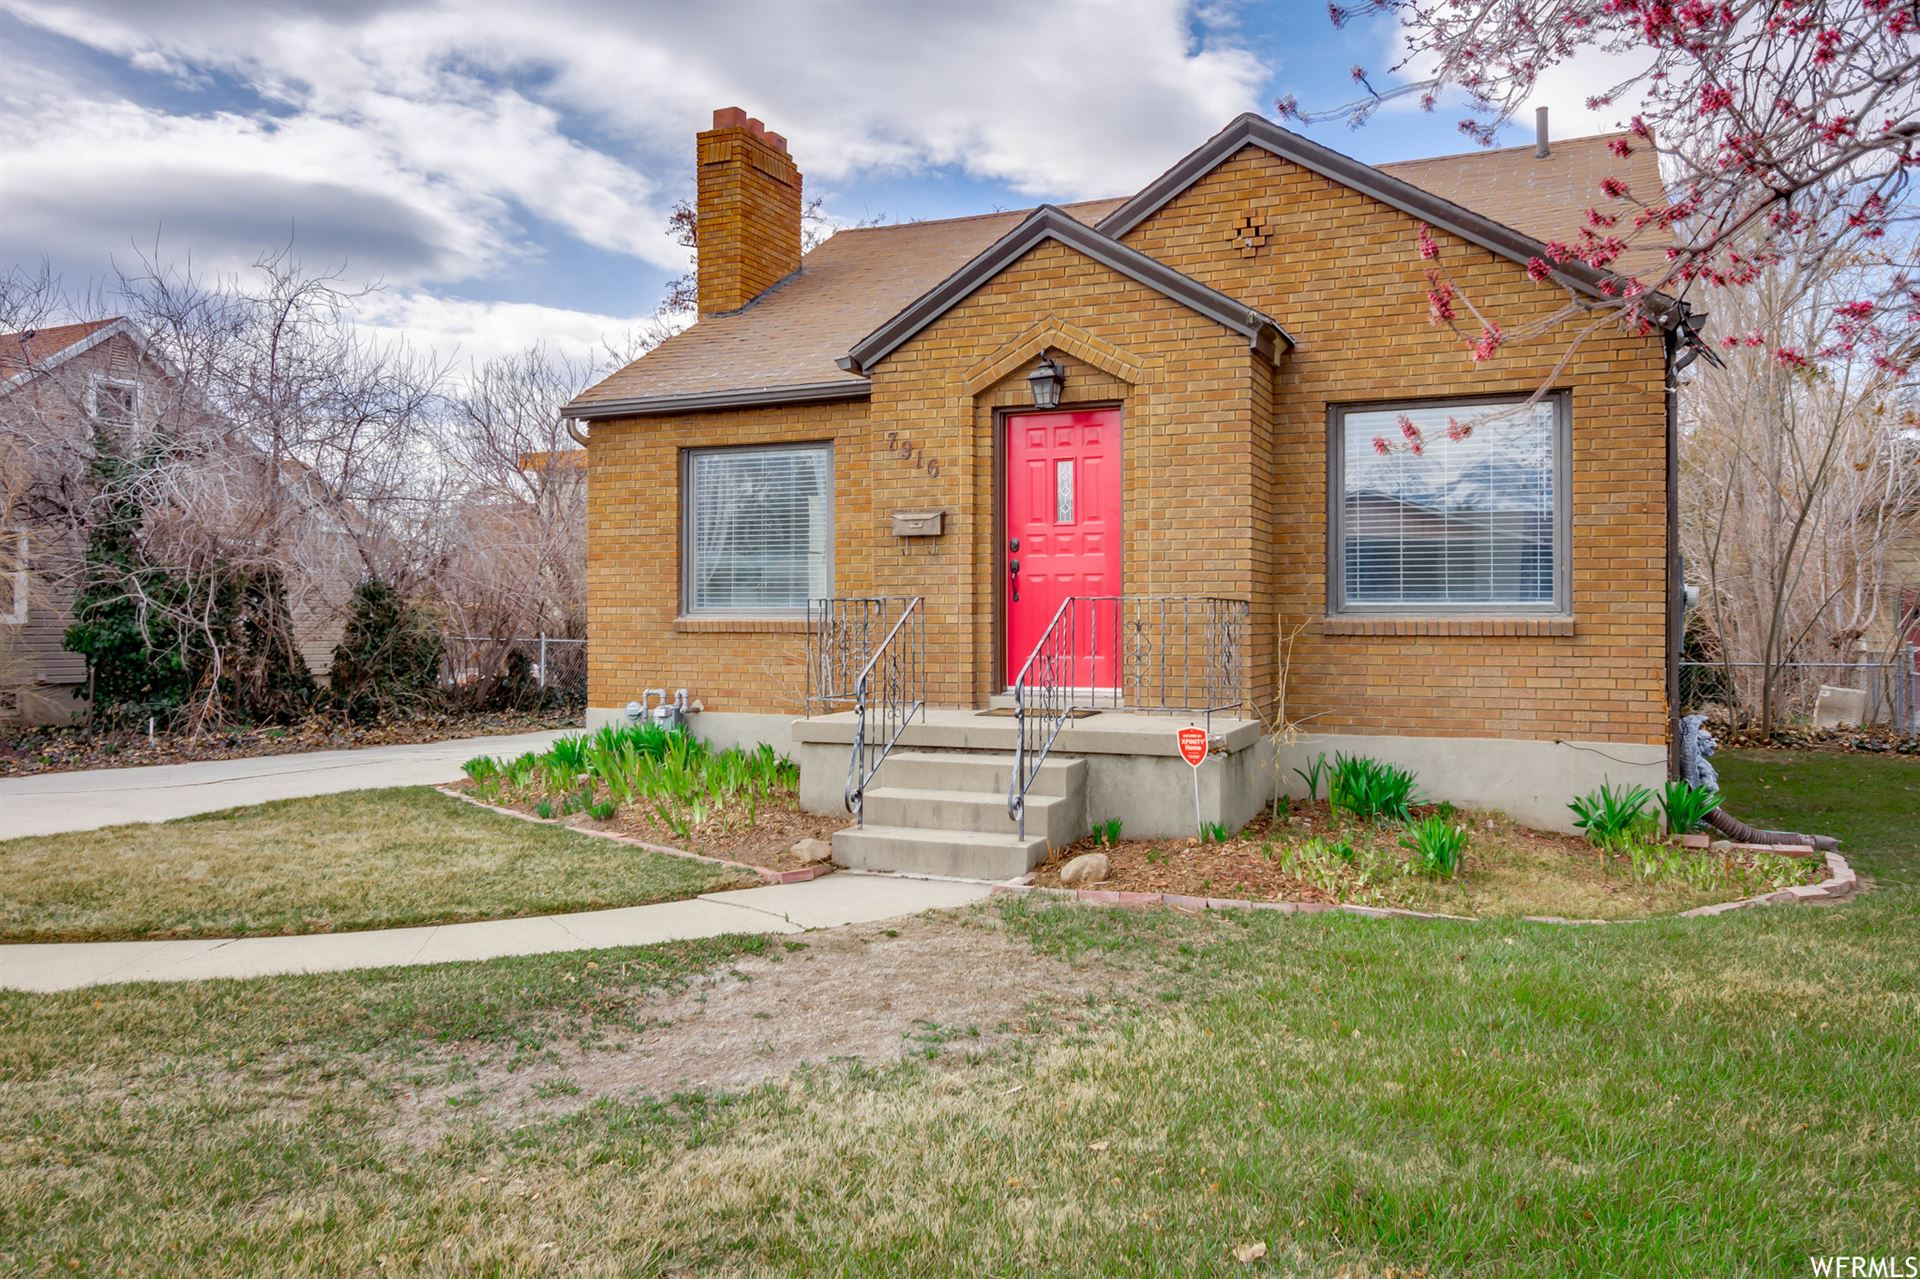 Photo of 7916 S PIONEER ST, Midvale, UT 84047 (MLS # 1731608)